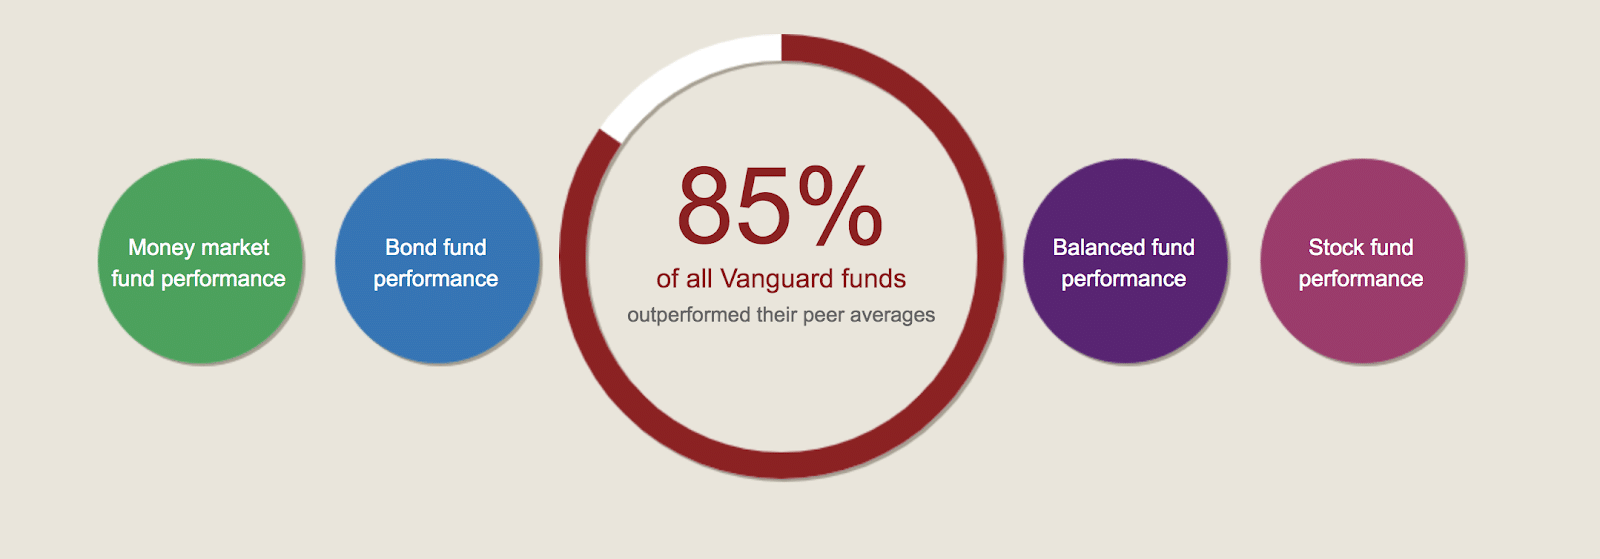 vanguard graph about their outperformance of other funds